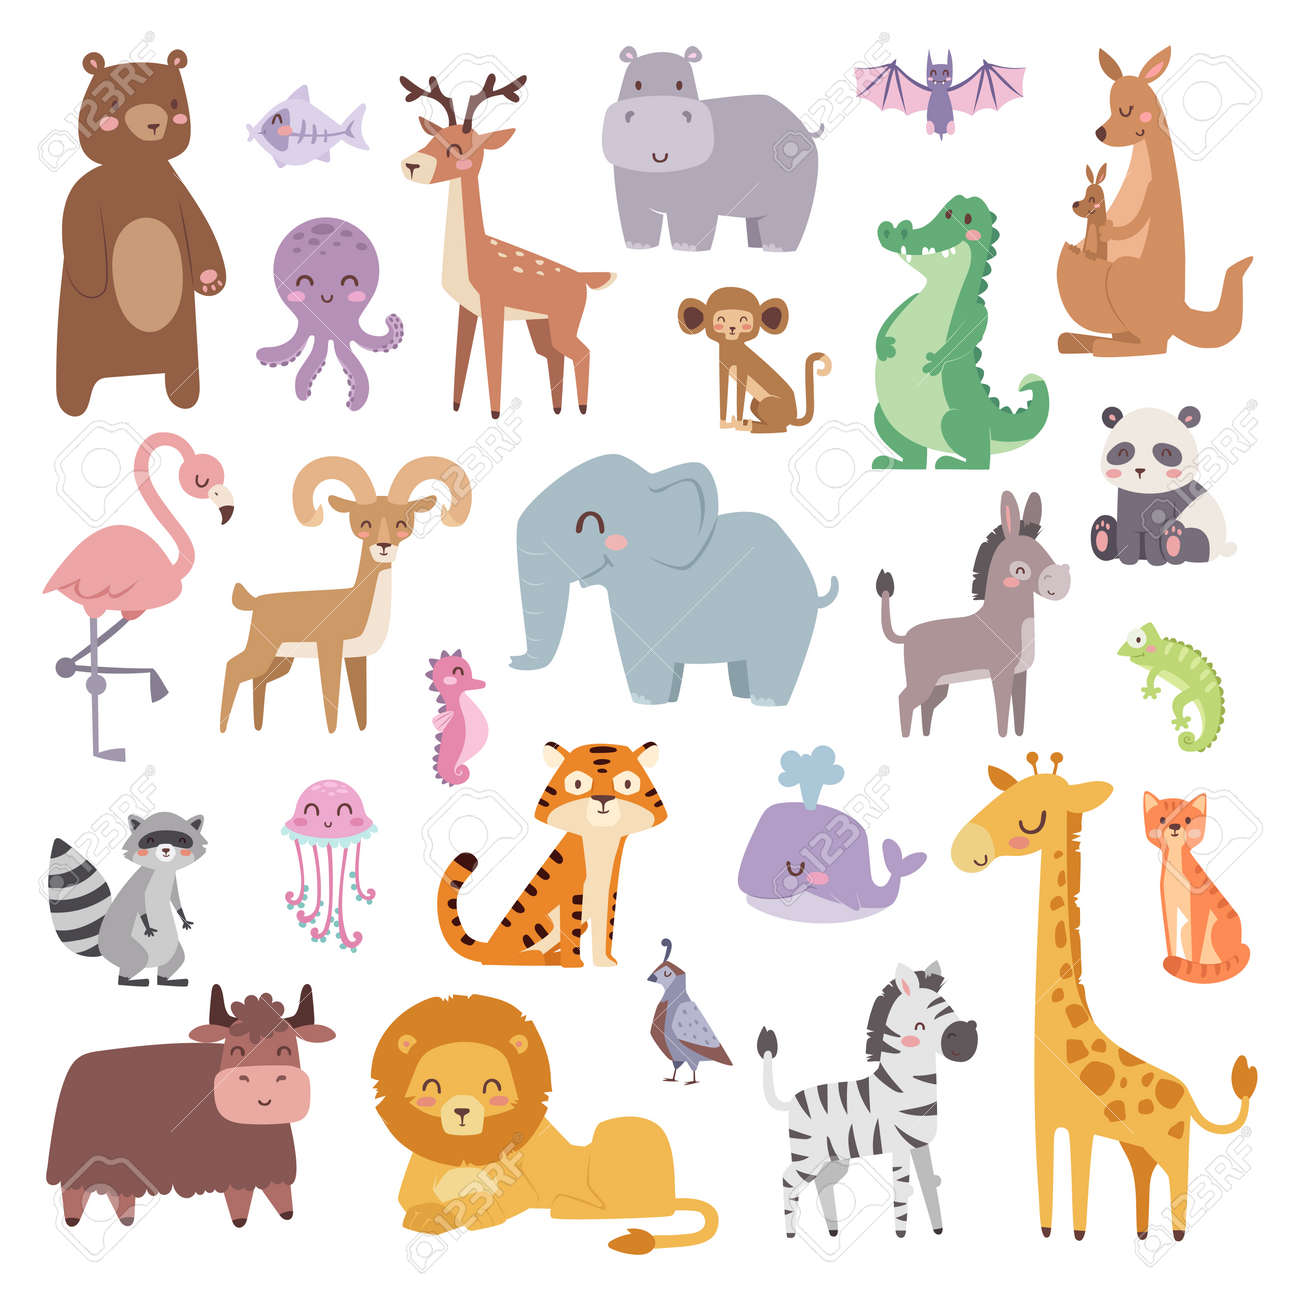 cartoon animals character and wild cartoon cute animals collections vector cartoon zoo animals big set - Images Cartoon Animals